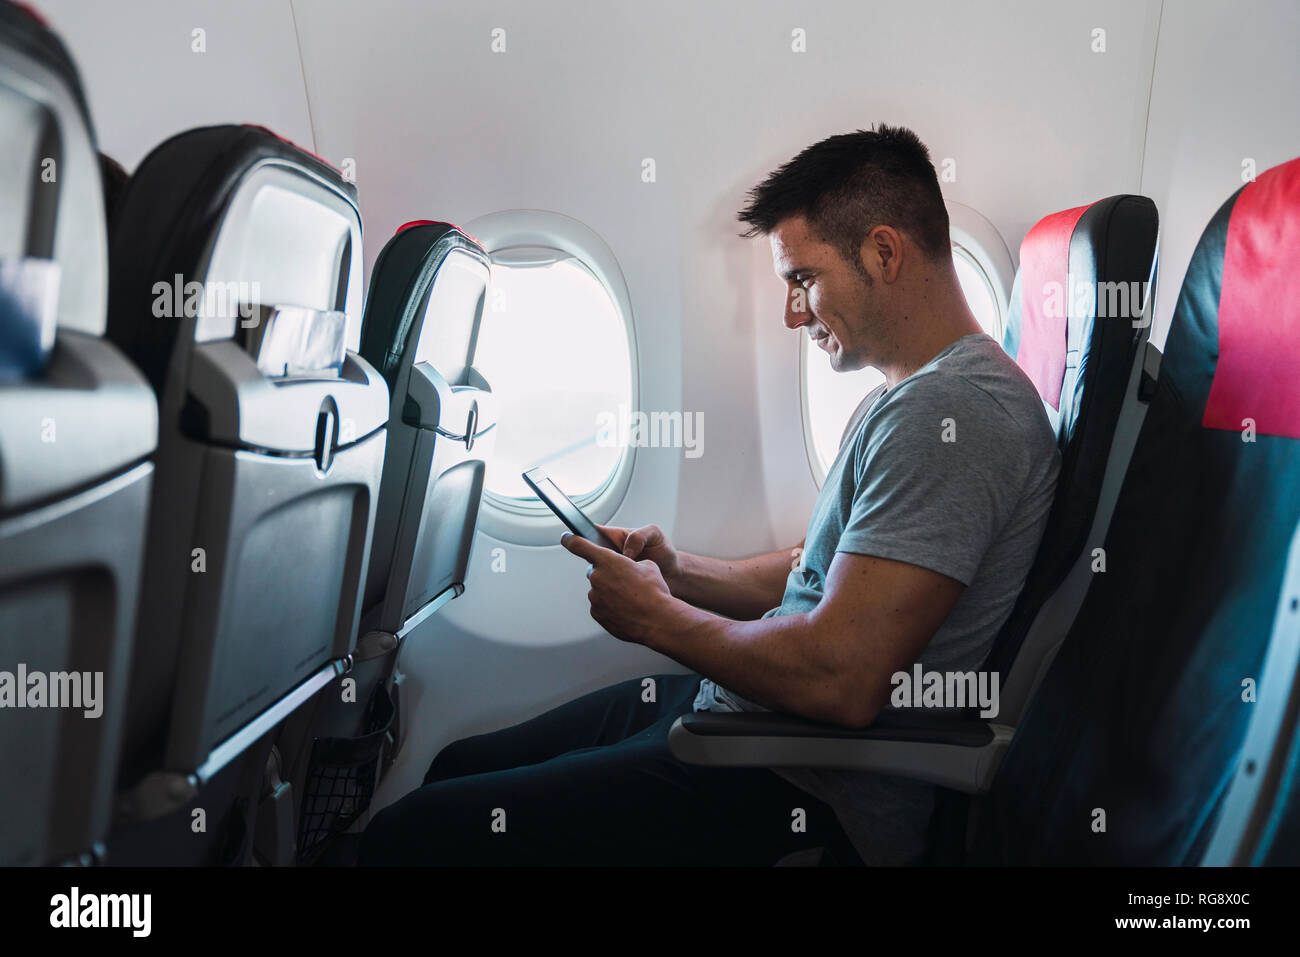 Man using ebook in airplane - Stock Image